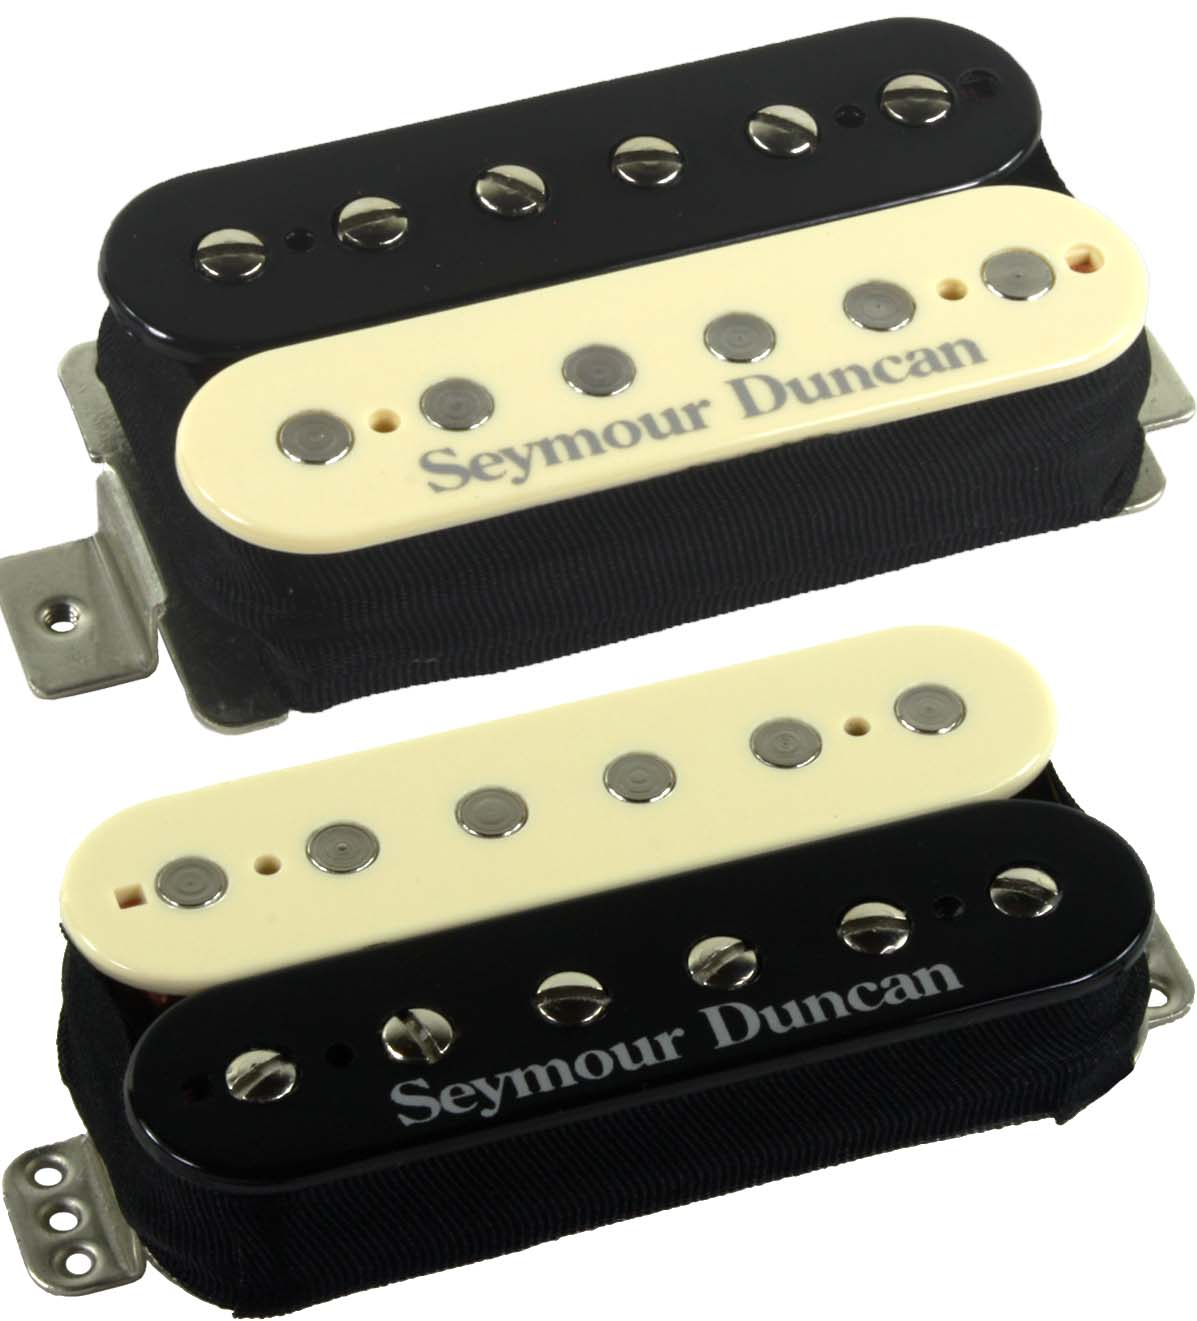 Seymour Duncan F-Spaced Hot Rodded Humbucker Set, SH-2n Neck + TB-4 JB  Bridge Pickups, Reverse Zebra